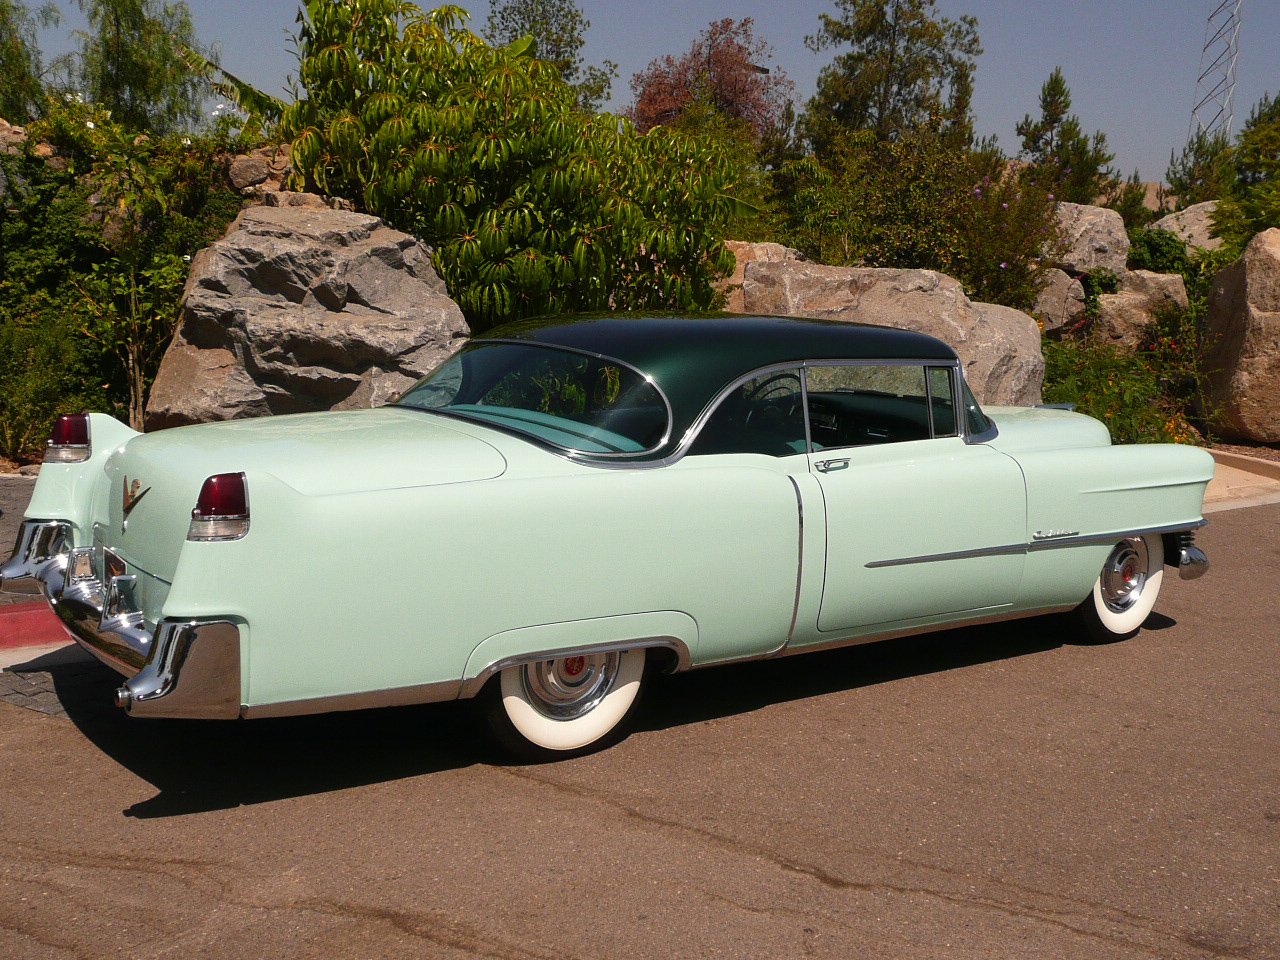 1954 CADILLAC COUPE DE VILLE 2 DOOR HARDTOP - Rear 3/4 - 80995